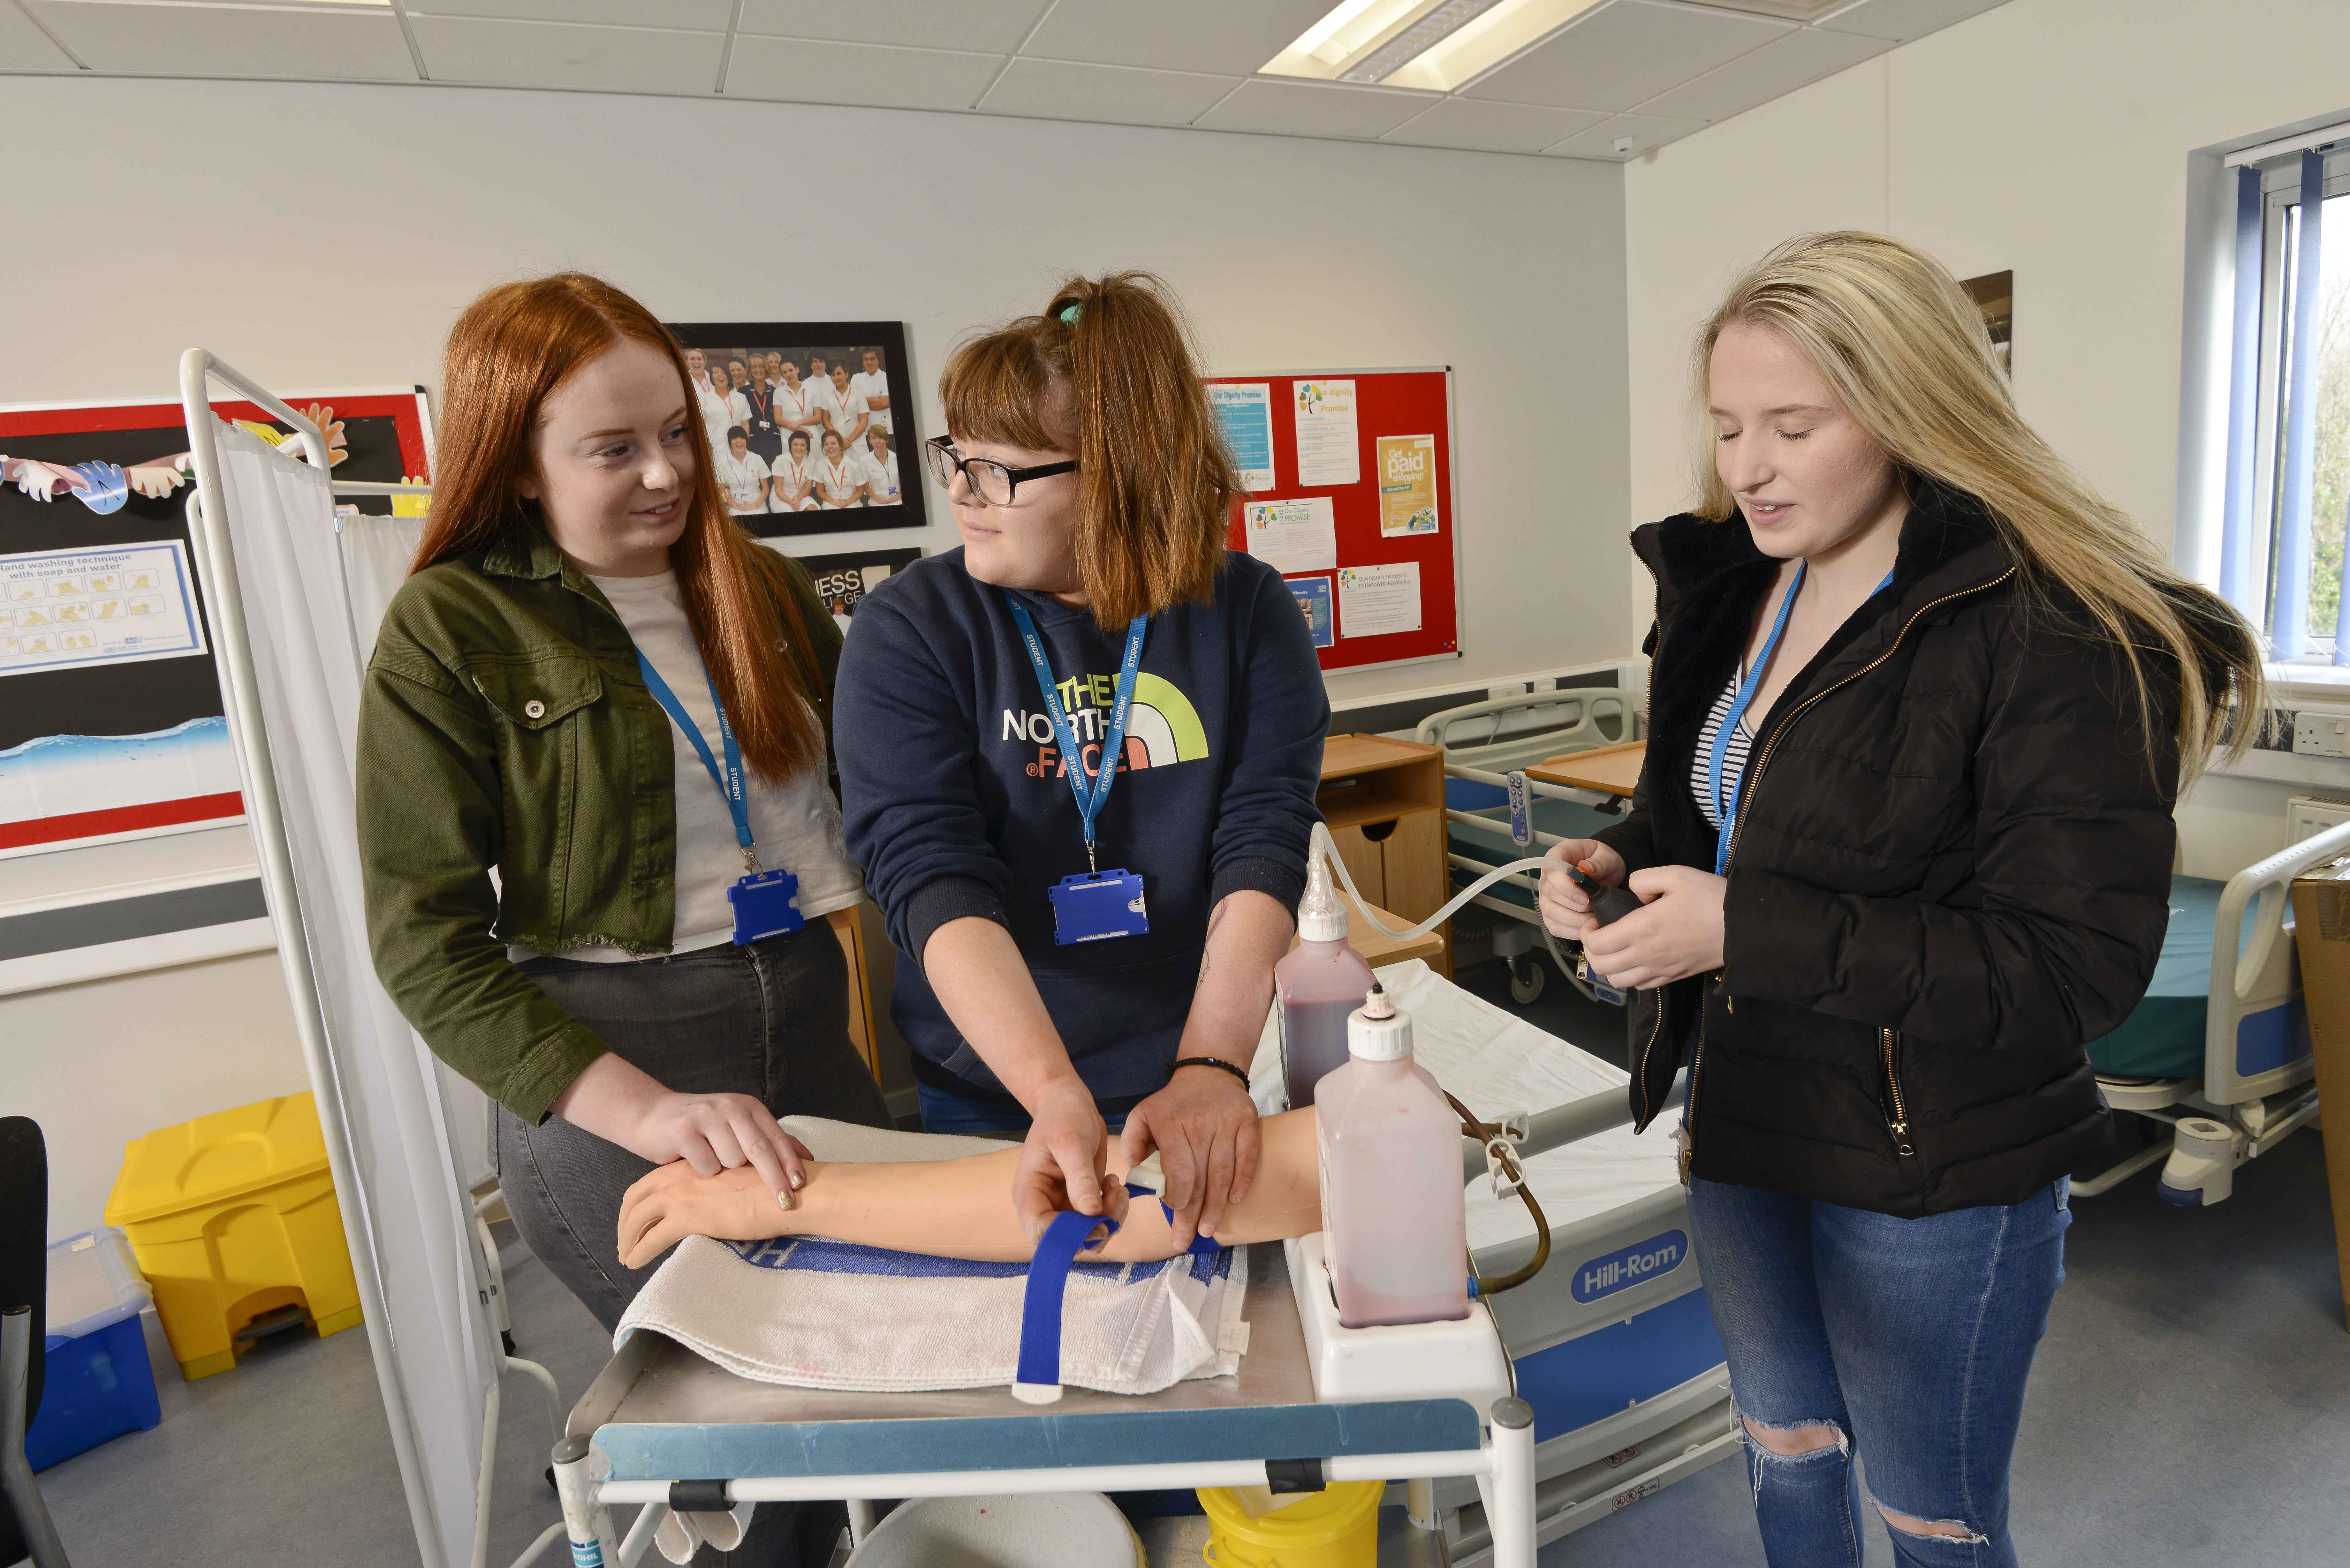 Lead Adult Care Worker Level 3